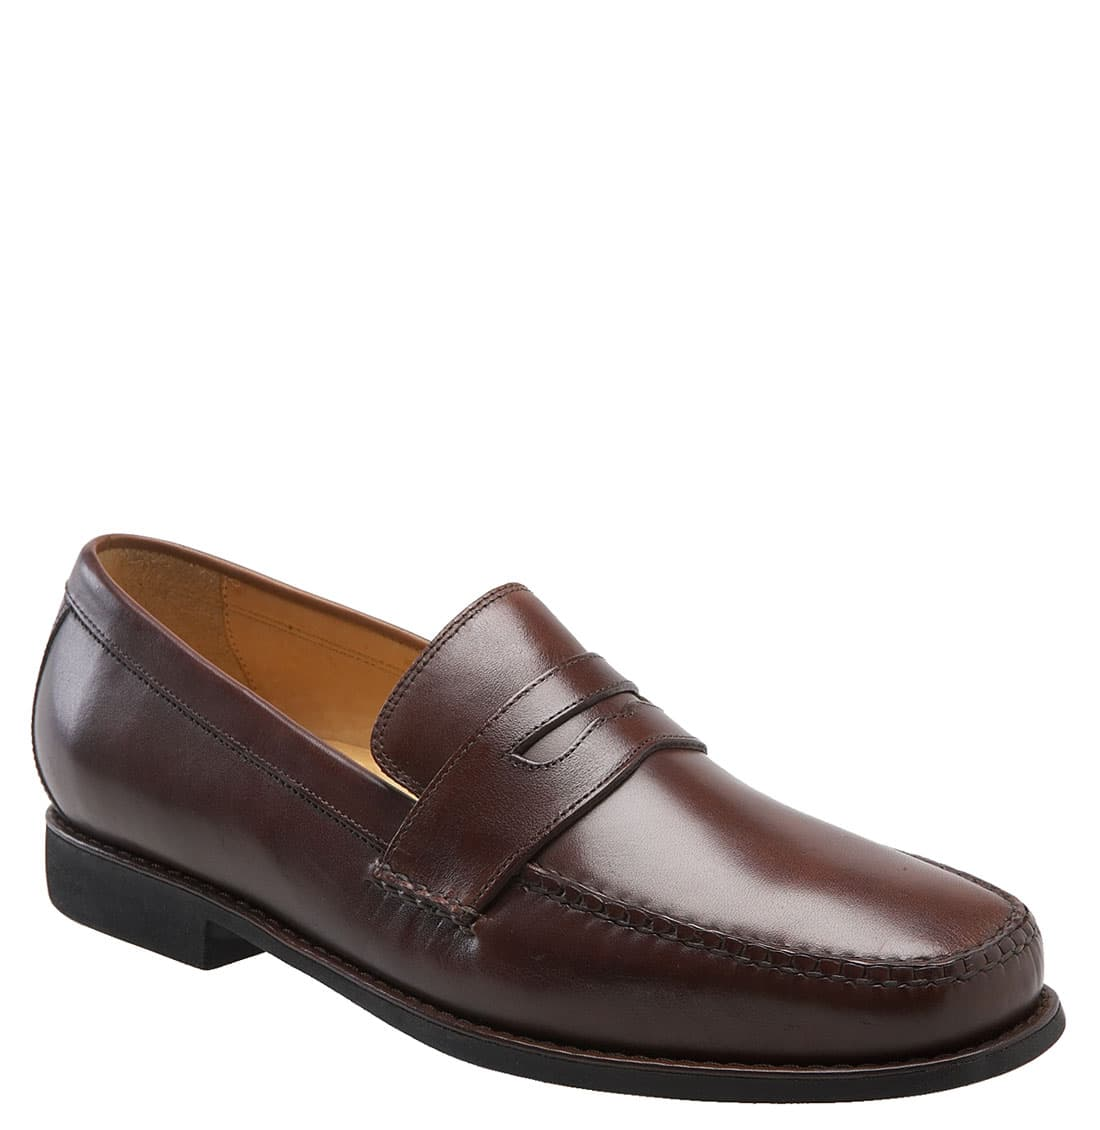 Johnston & Murphy 'Ainsworth' Penny Loafer in 2019